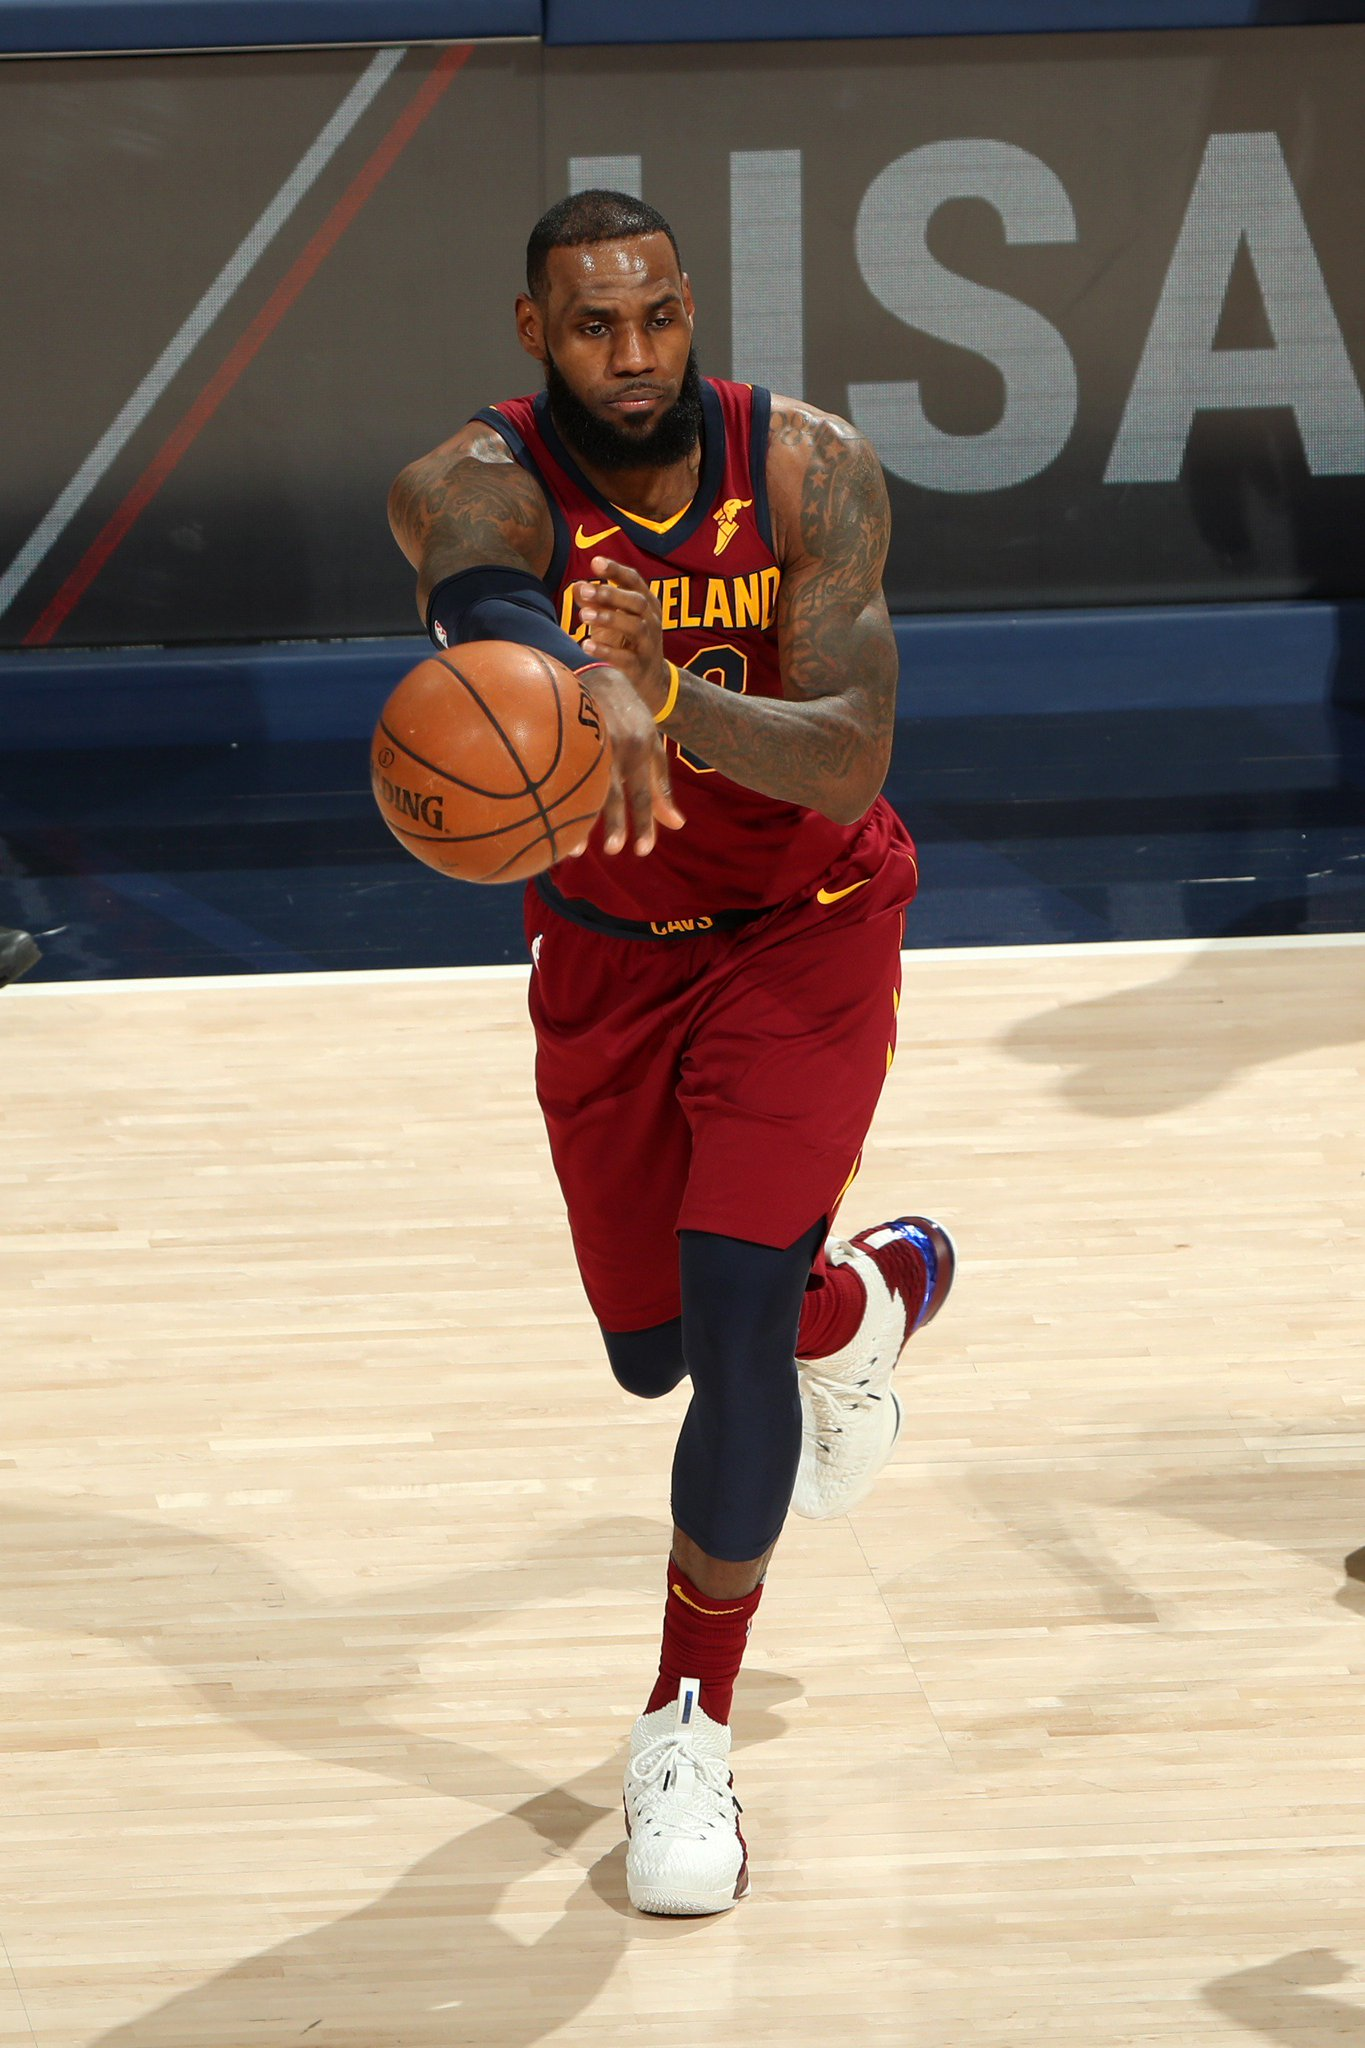 #TripleDoubleWatch  LeBron James has 18 PTS, 12 REB, 8 AST for the @cavs midway through the 4th.  #WhateverItTakes https://t.co/m98aAnDzHh